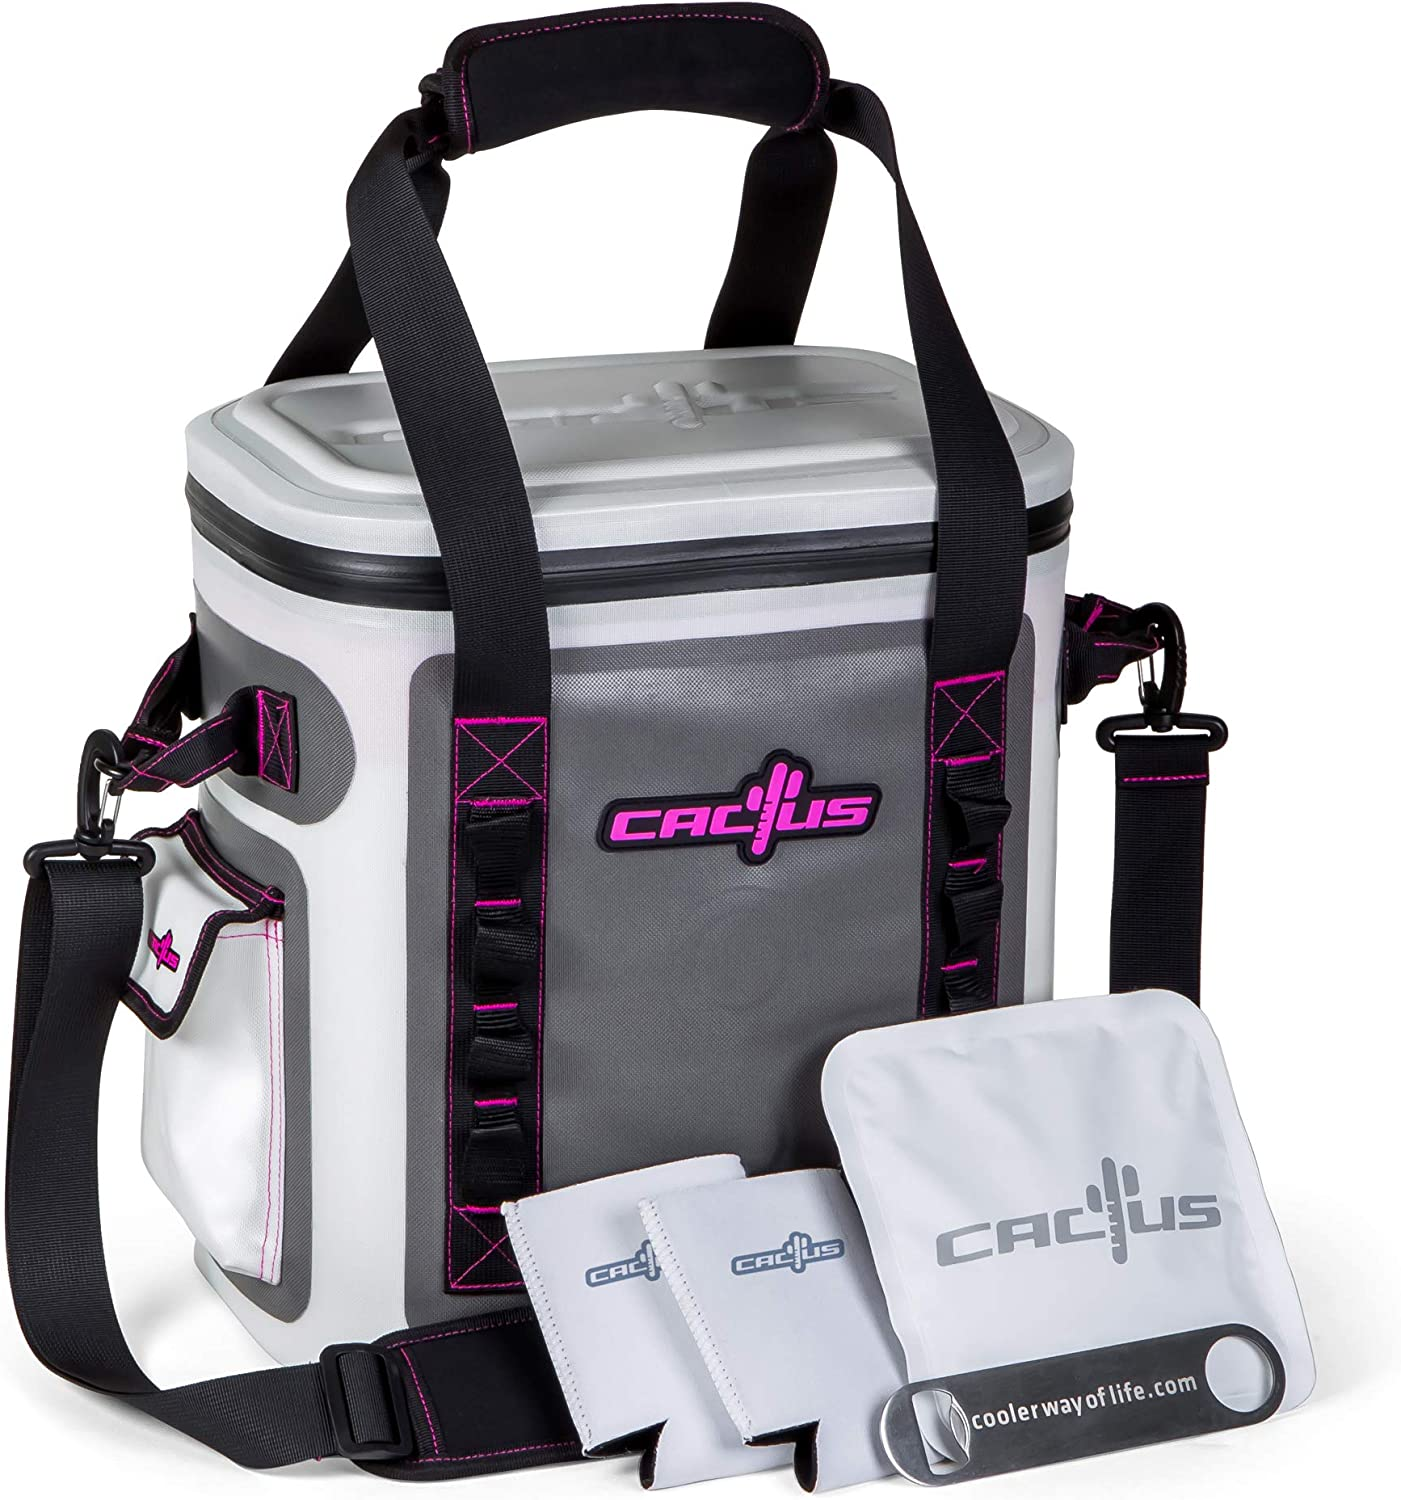 CACTUS Mojave 23 Party Kit – Insulated Soft Cooler Non-Permeable Long Lasting Cold Tech Free Bonus Items Soft Cold Pack, Neo Drink Holders, Stainless Opener w Magnetic Front Panel Cosmo Pink